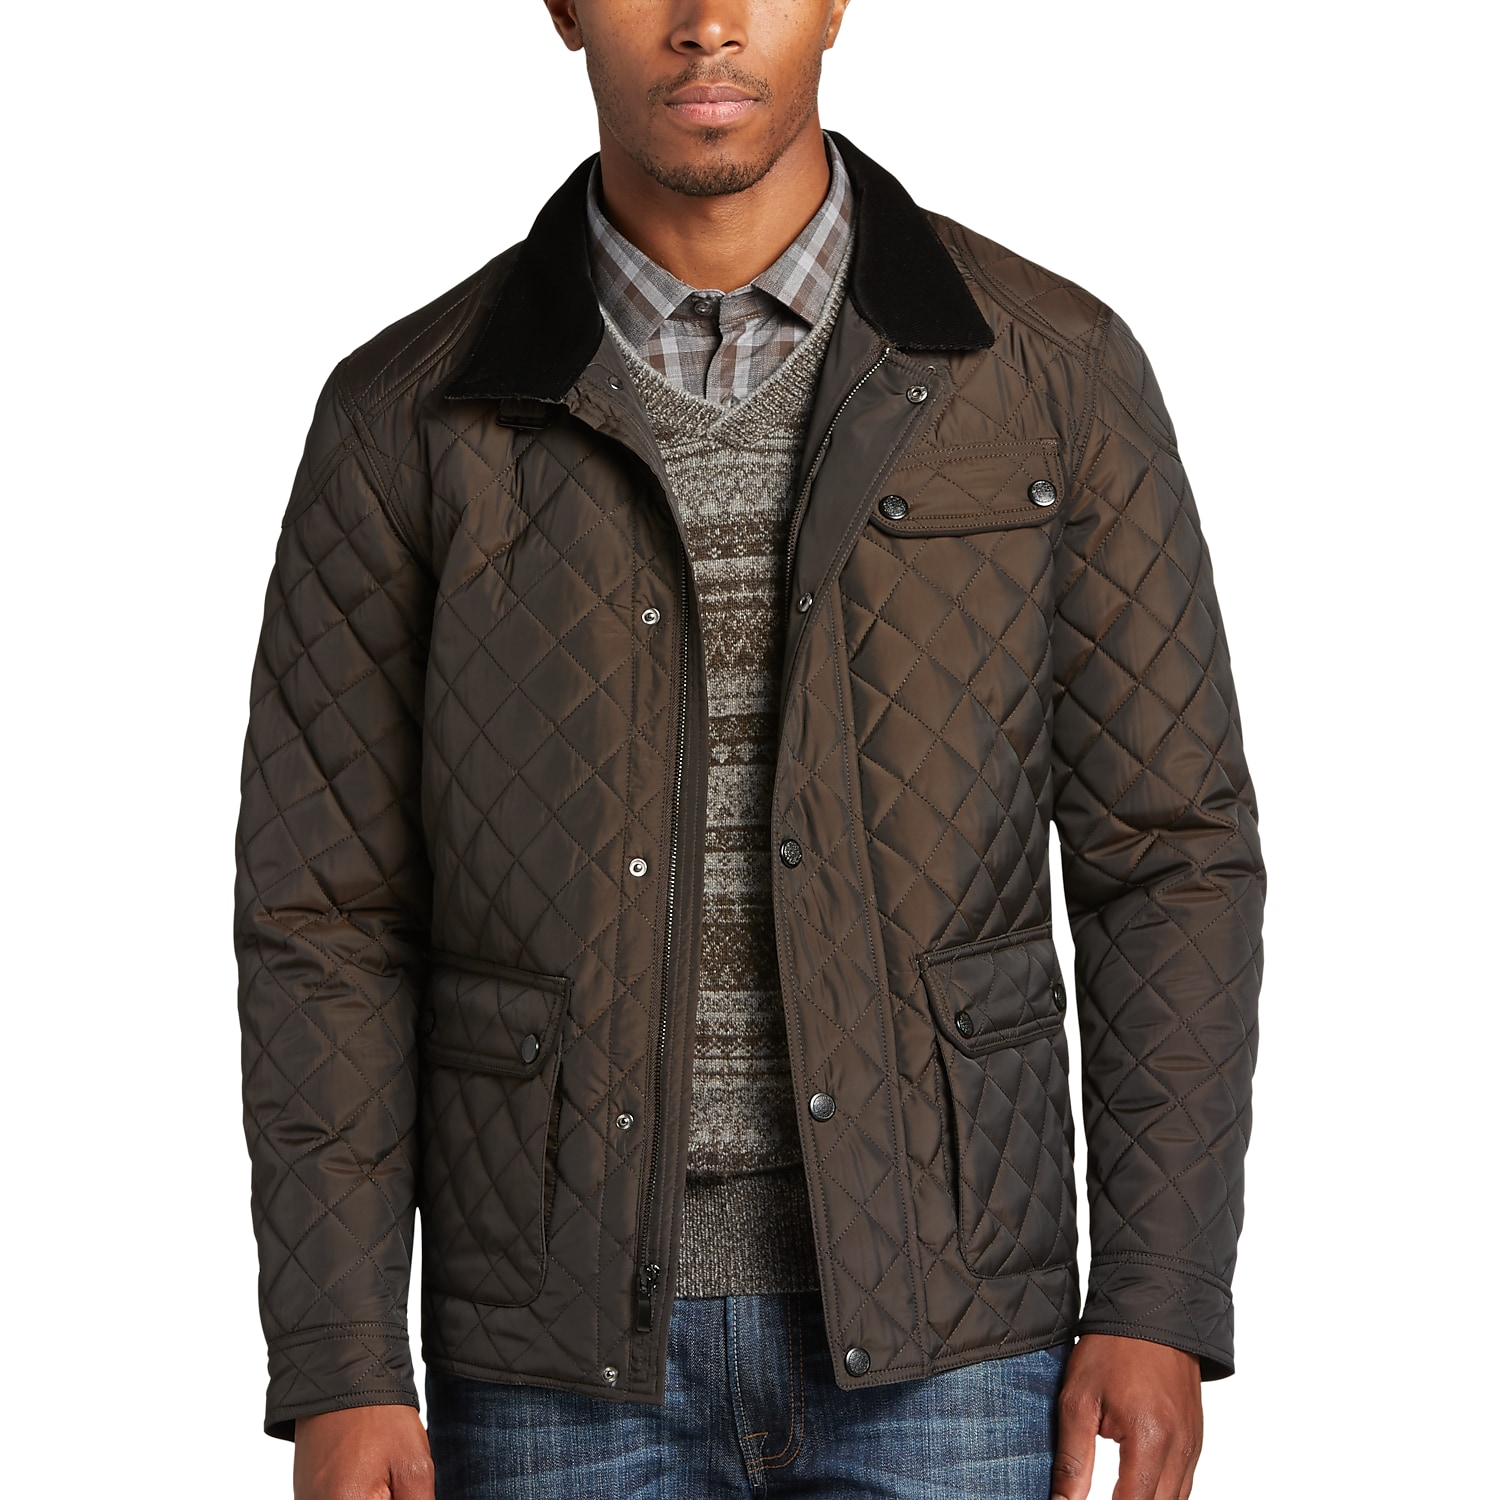 Pronto Uomo Brown Modern Fit Quilted Jacket - Men's Casual Jackets ... : quilted jacket for mens - Adamdwight.com